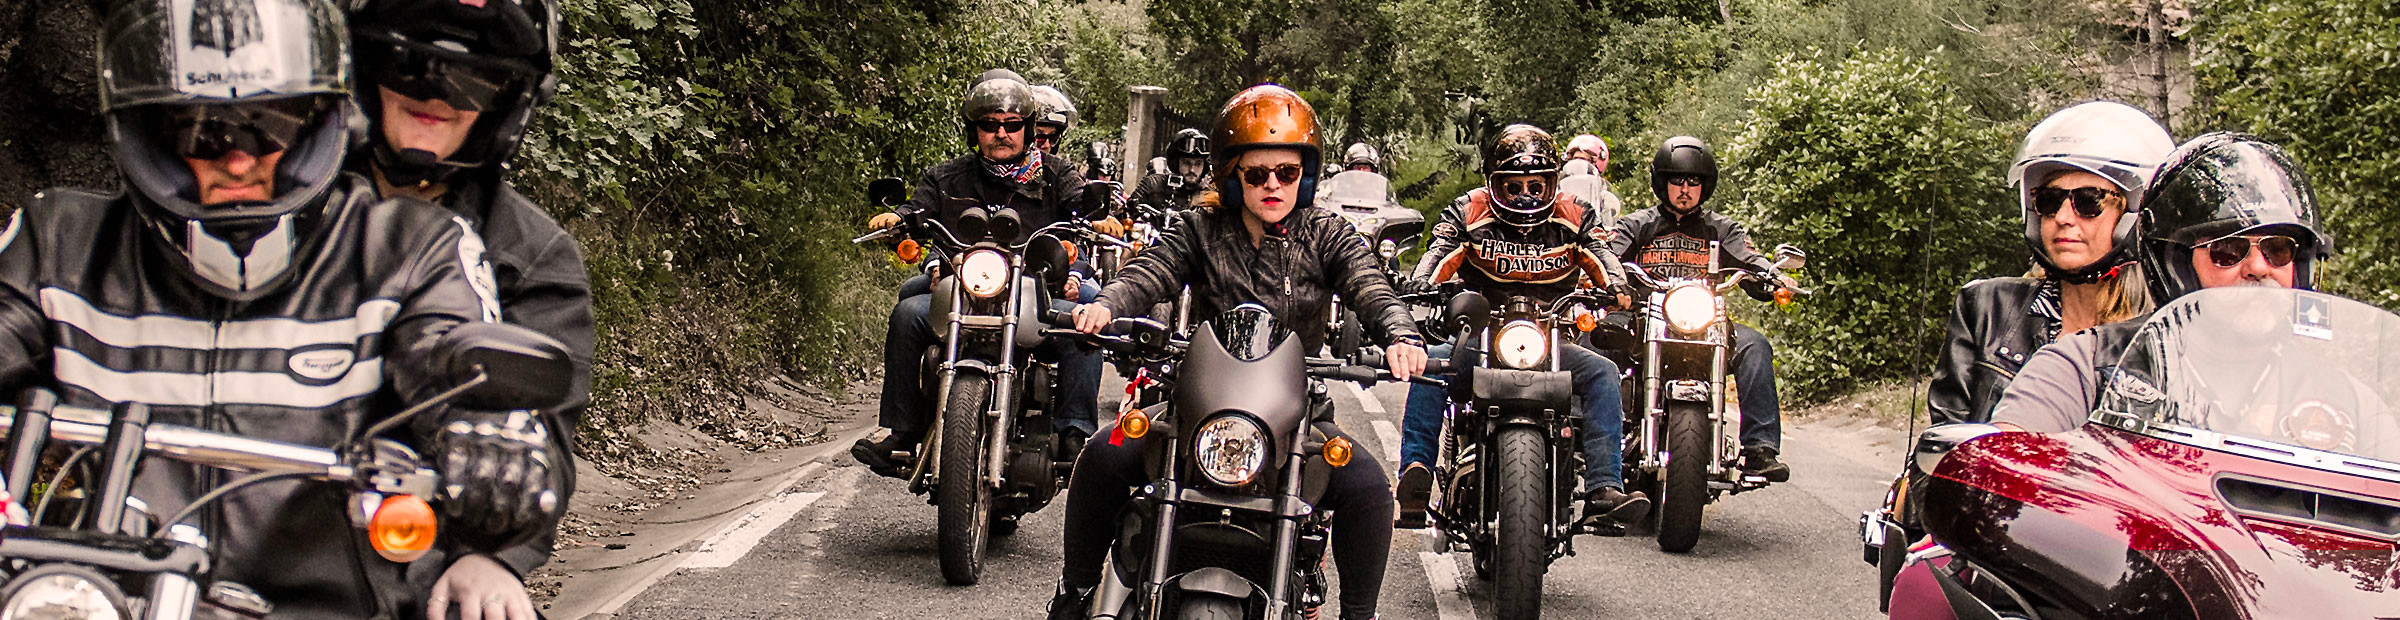 Phantom Harley-Davidson® Events